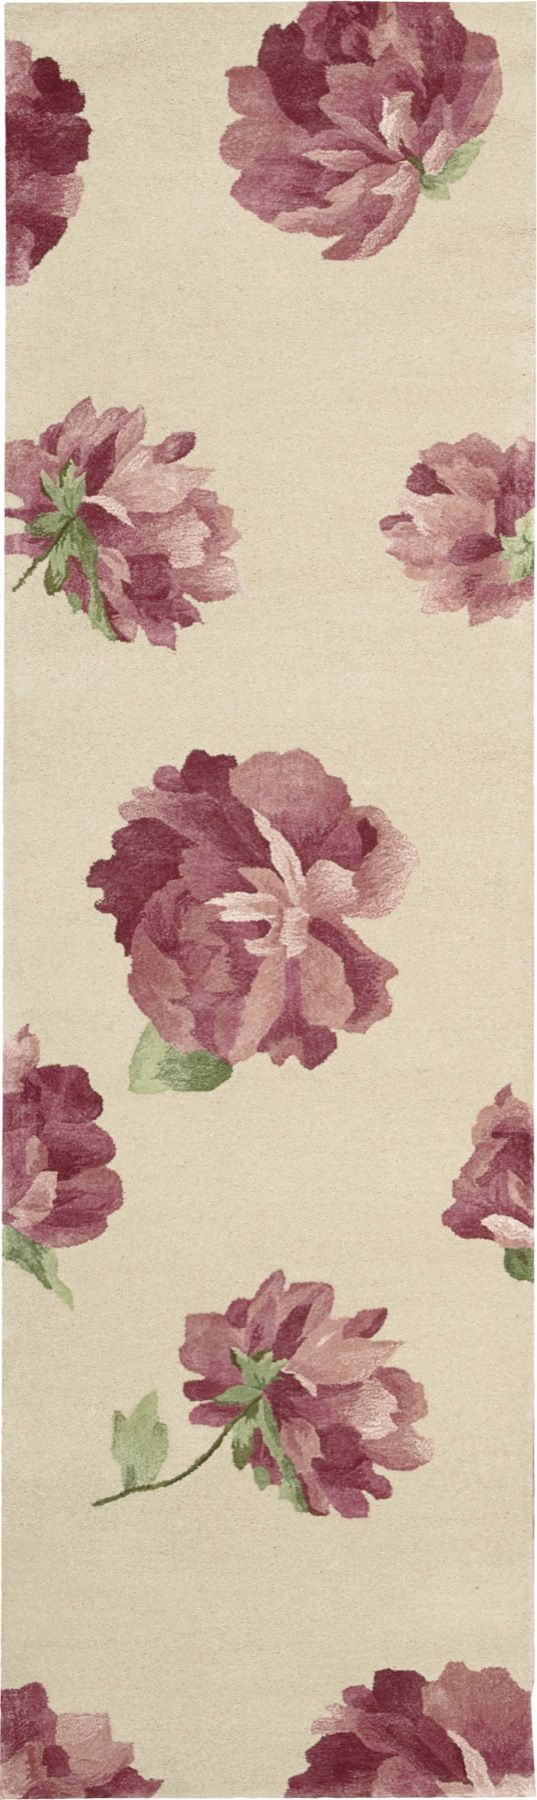 nourison modern elegance country & floral area rug collection